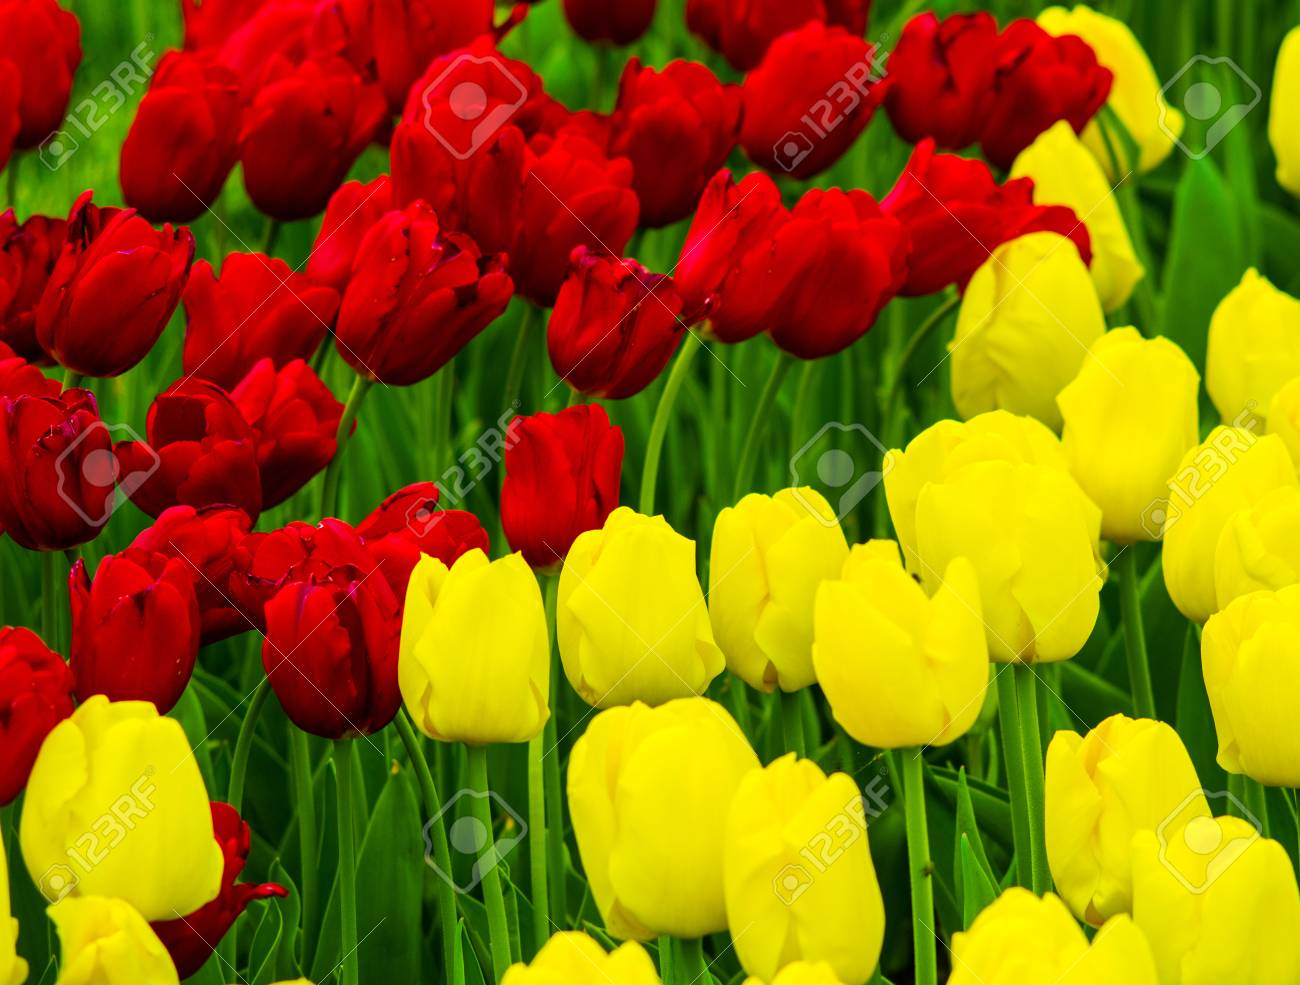 Flowers Tulips Yellow And Red Tulips Stock Photo Picture And